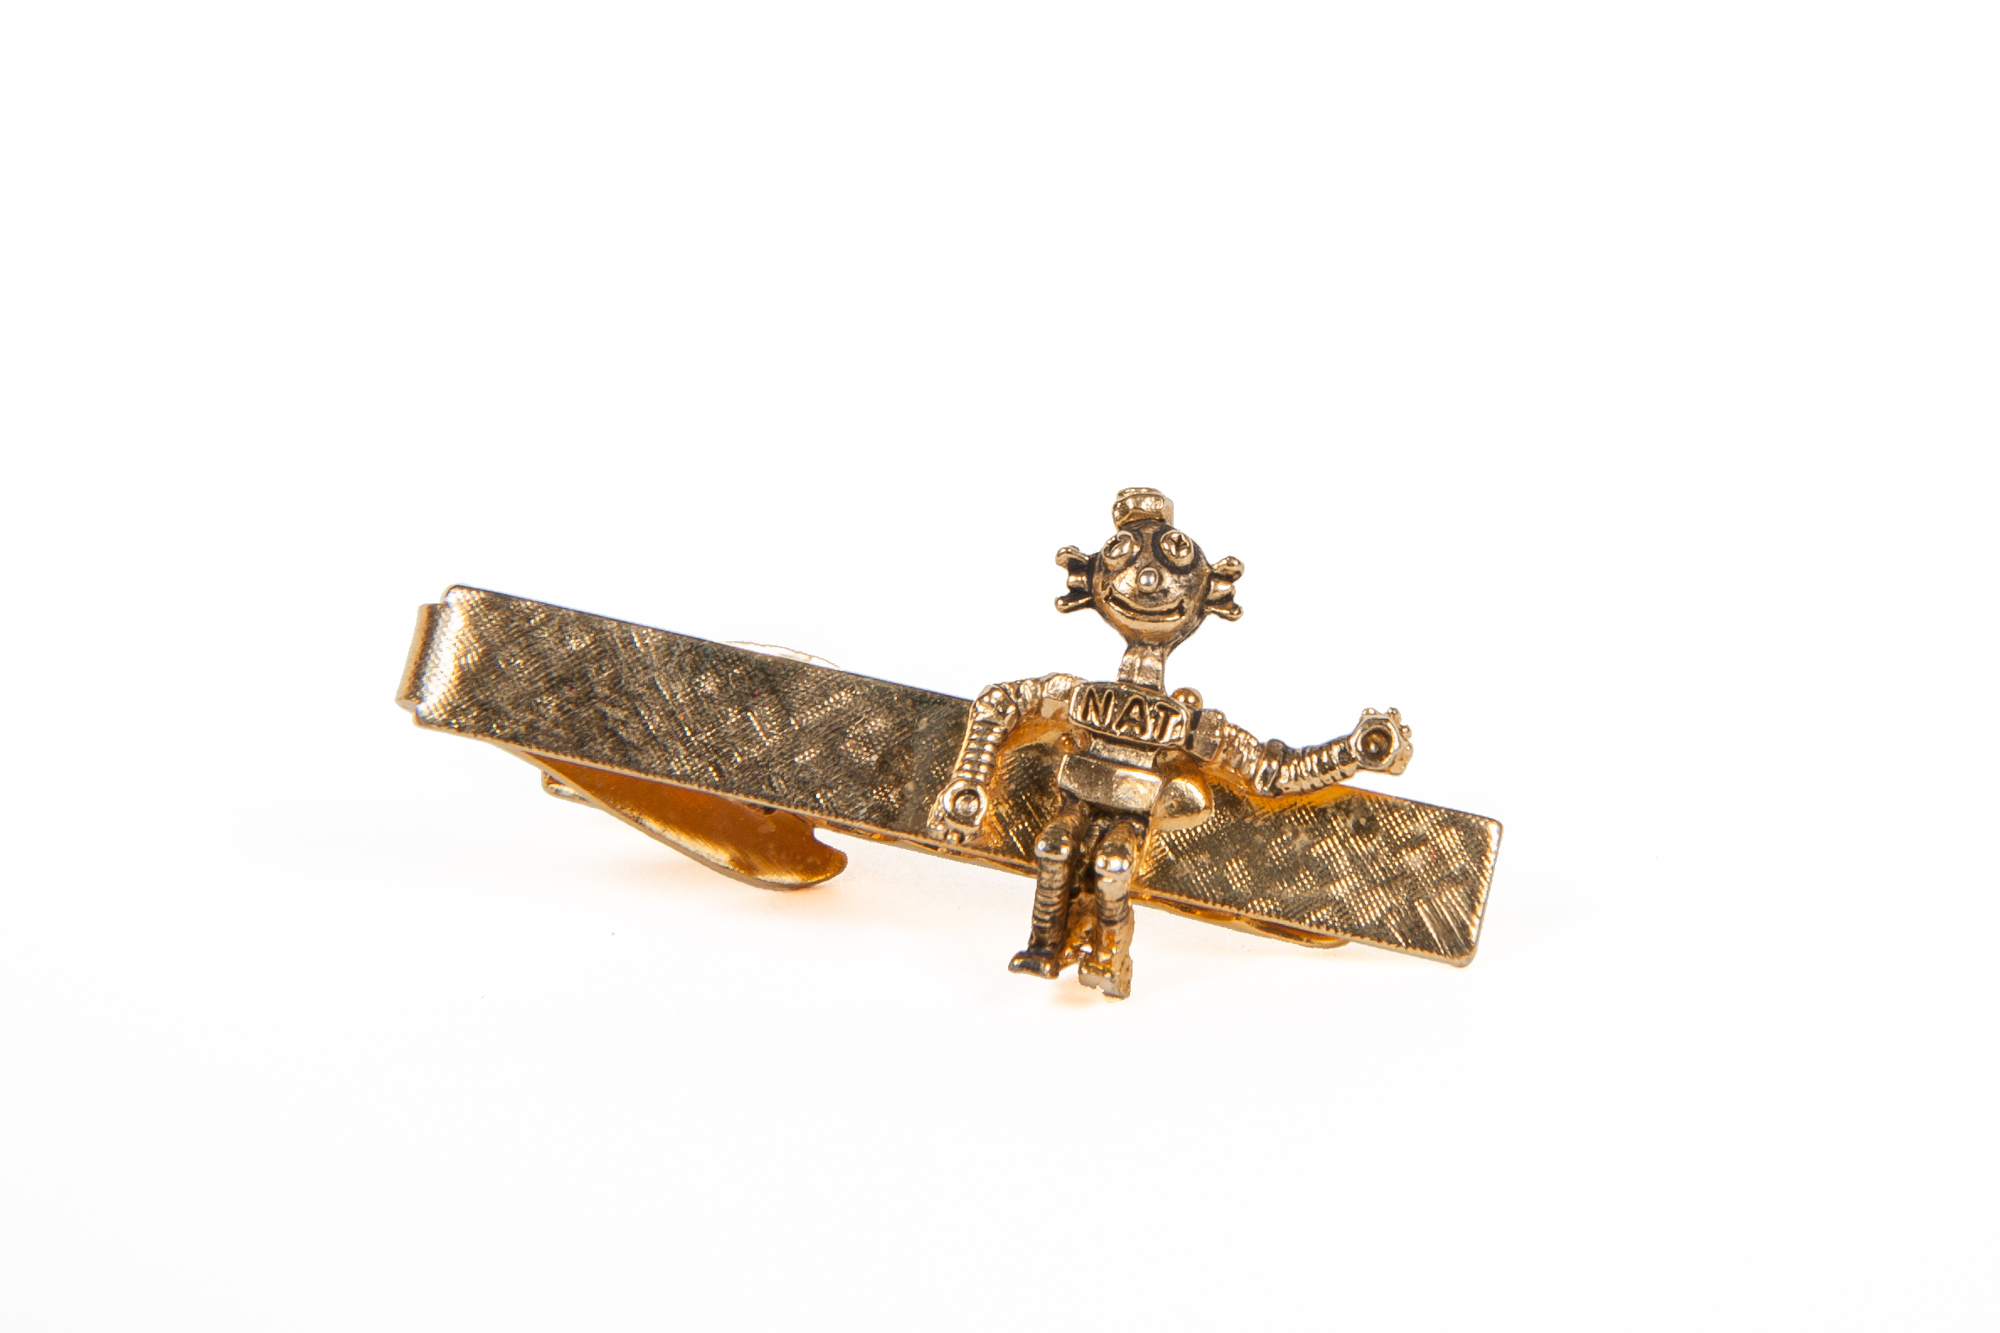 Promotional Tie Clip with NAT, a Robot fashioned from Nuts & Bolts (circa 1955)